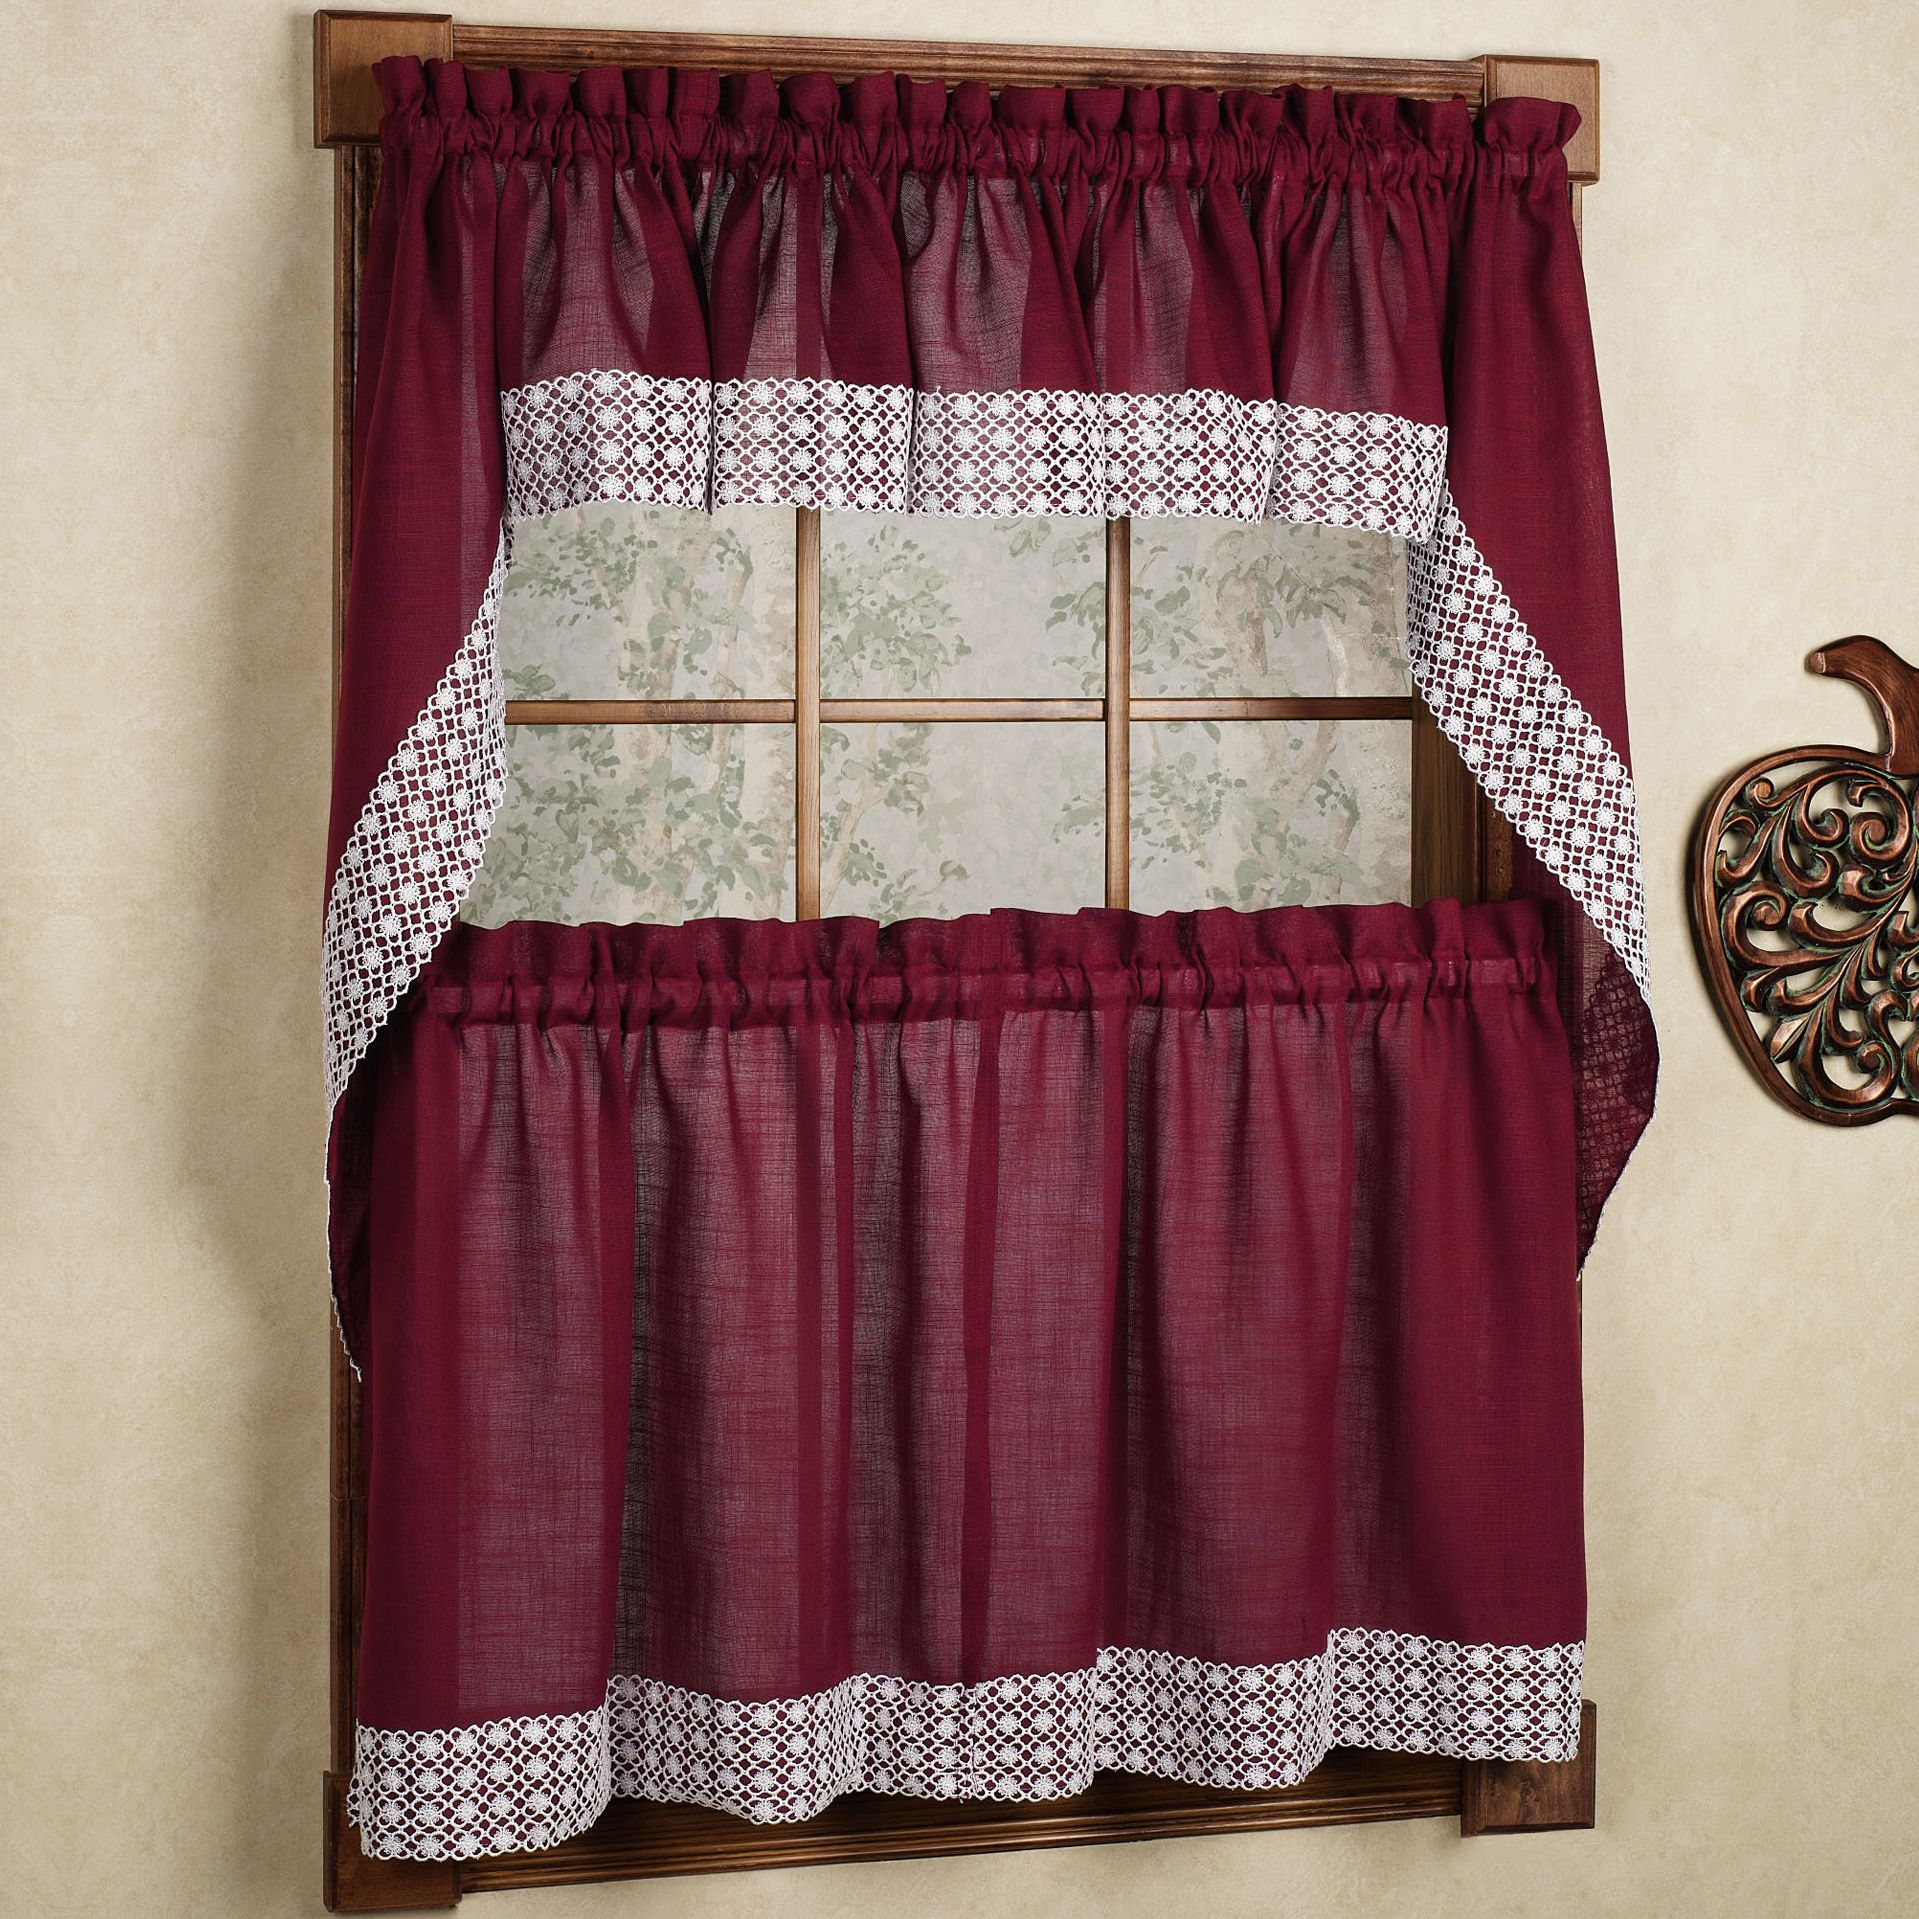 Salem Kitchen Curtain U2013 Burgundy W/White Lace Trim U2013 Lorraine Home Fashions